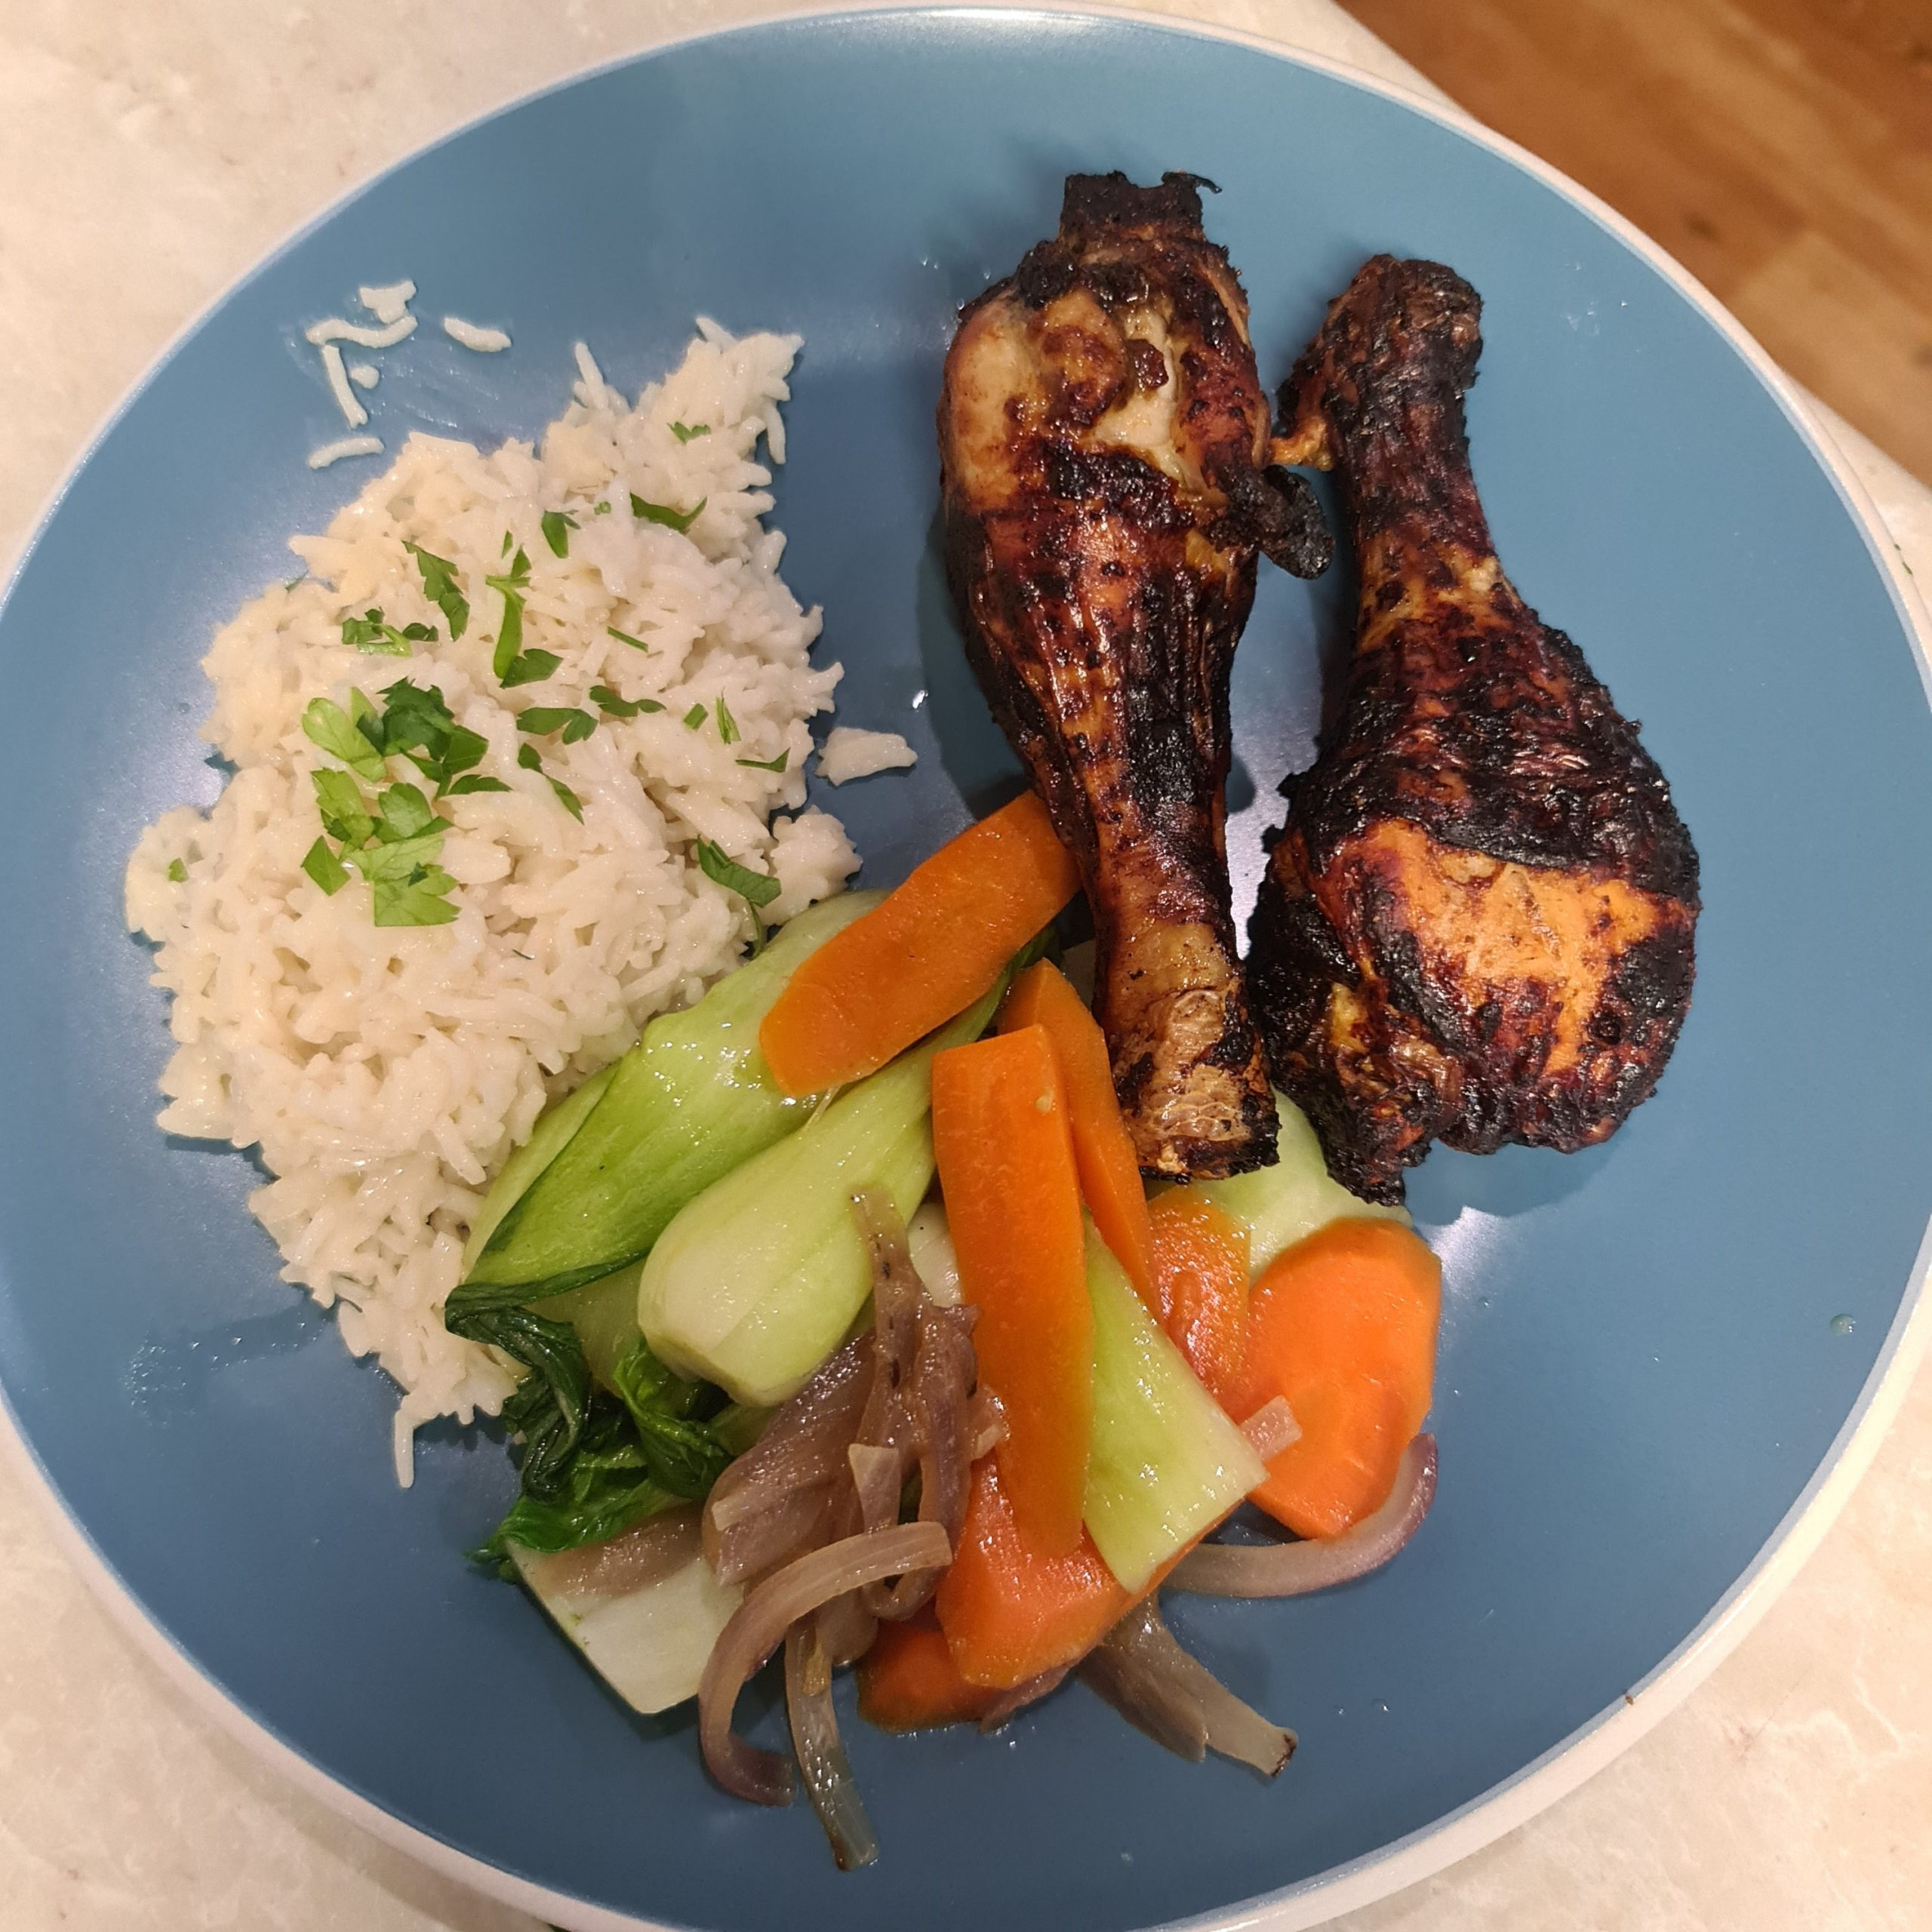 Crispy chicken with coconut rice and stir fry vegetables